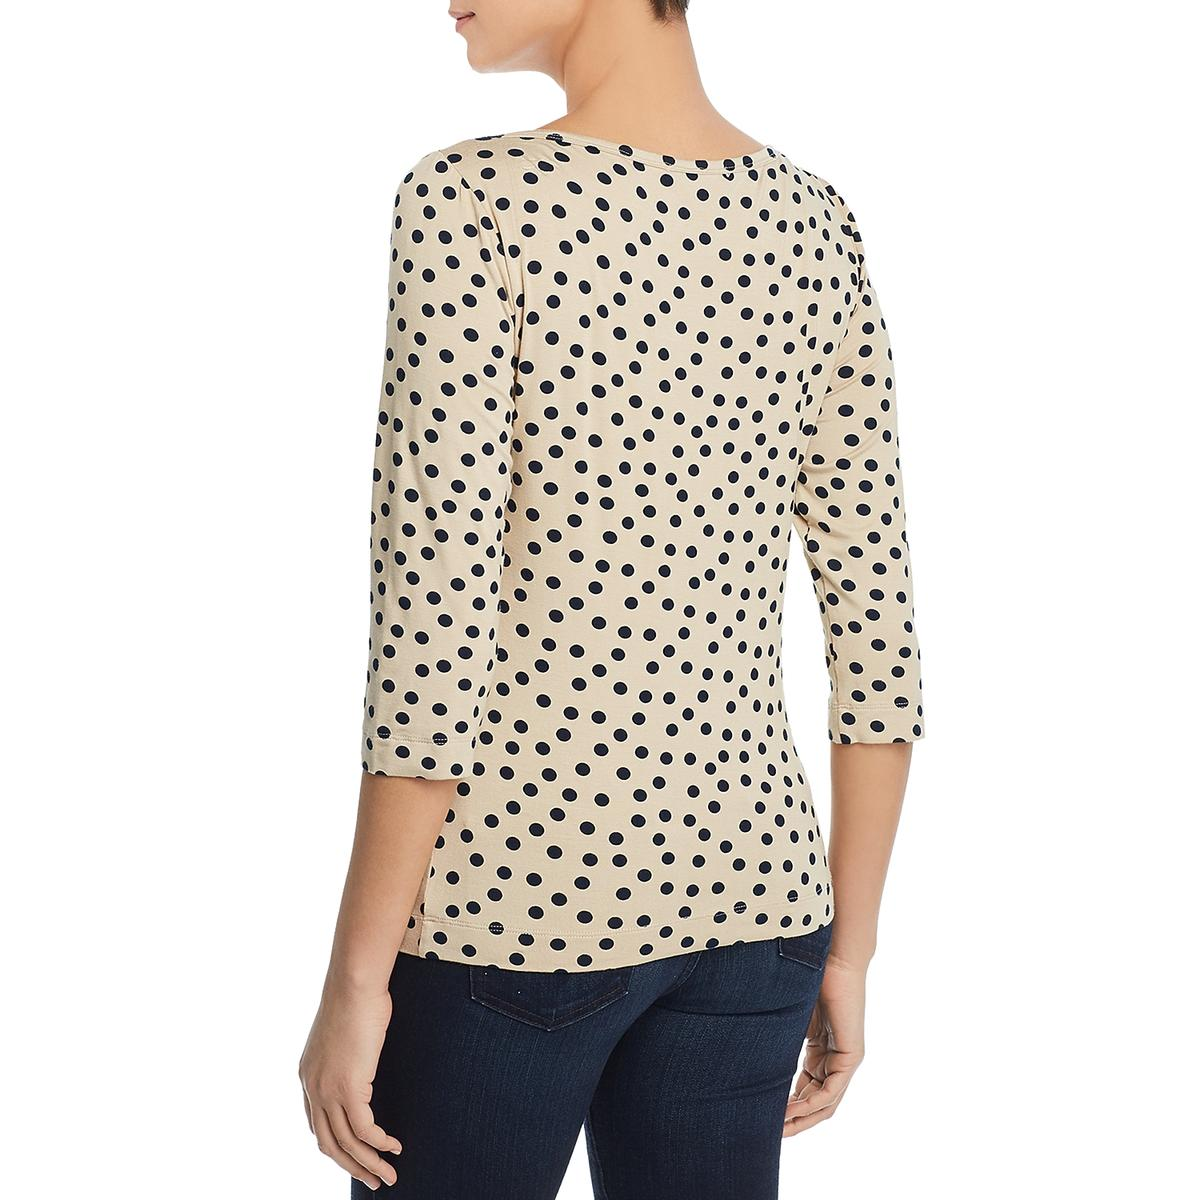 Three Dots Womens Polka Dot 3//4 Sleeve Tee T-Shirt Top BHFO 7333